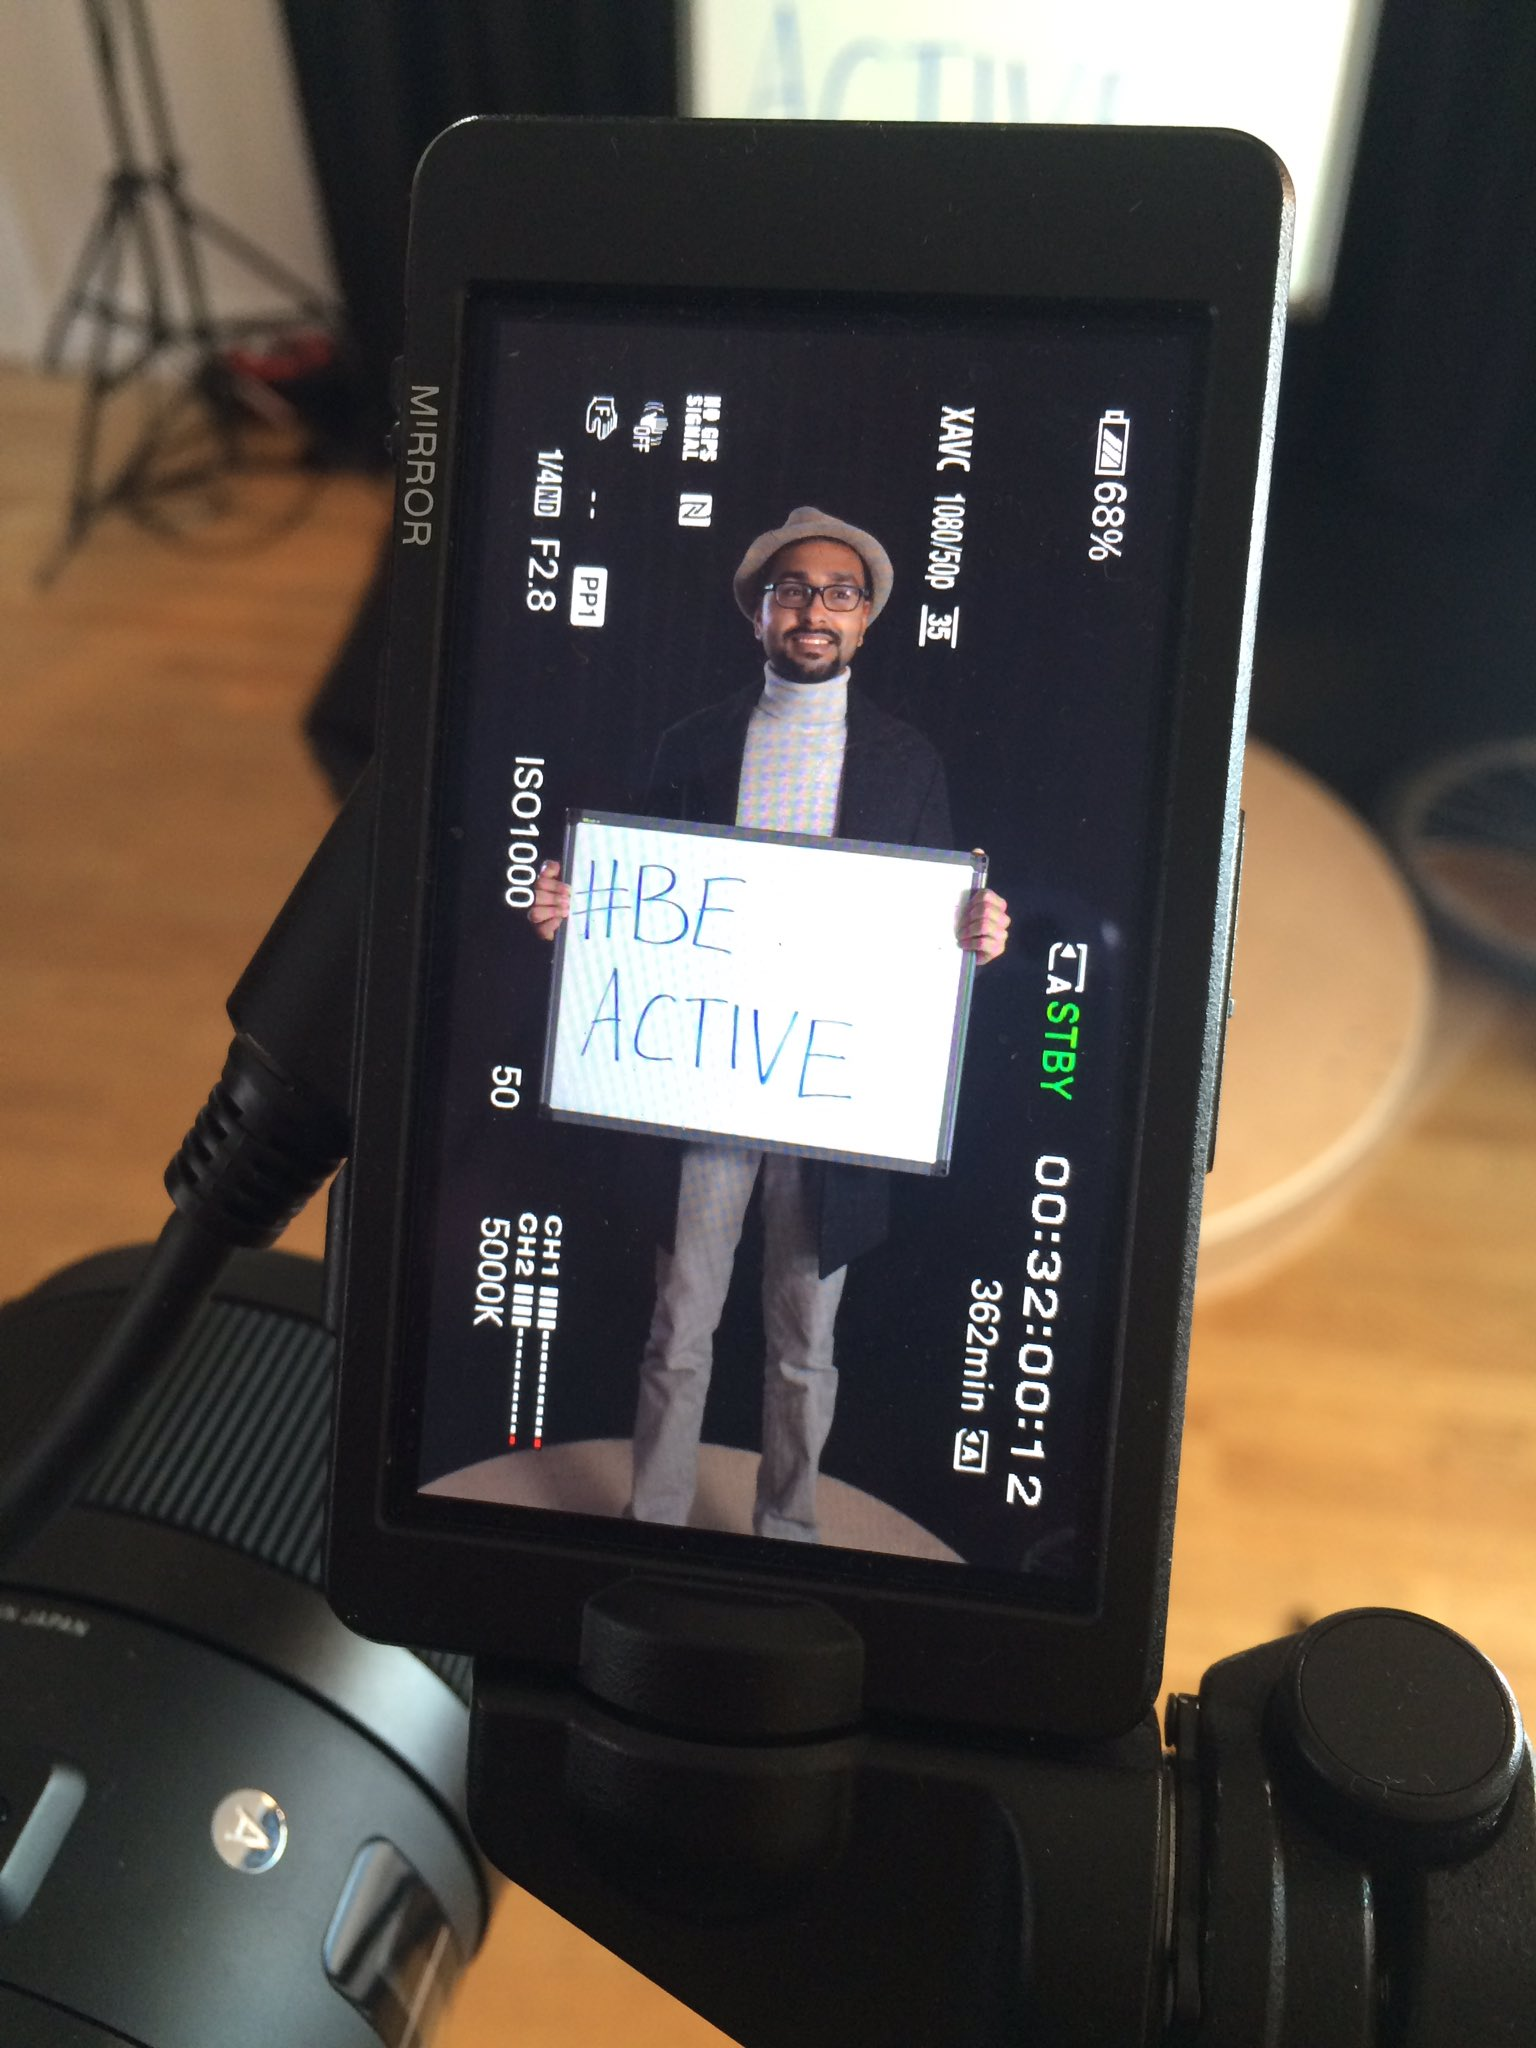 Huge thanks to Nitish from @LAMPadvocacy for taking part in #filming for #WMHDleicester @leicester_news @wotspace with @imagenovamedia https://t.co/iMeaRvv41H